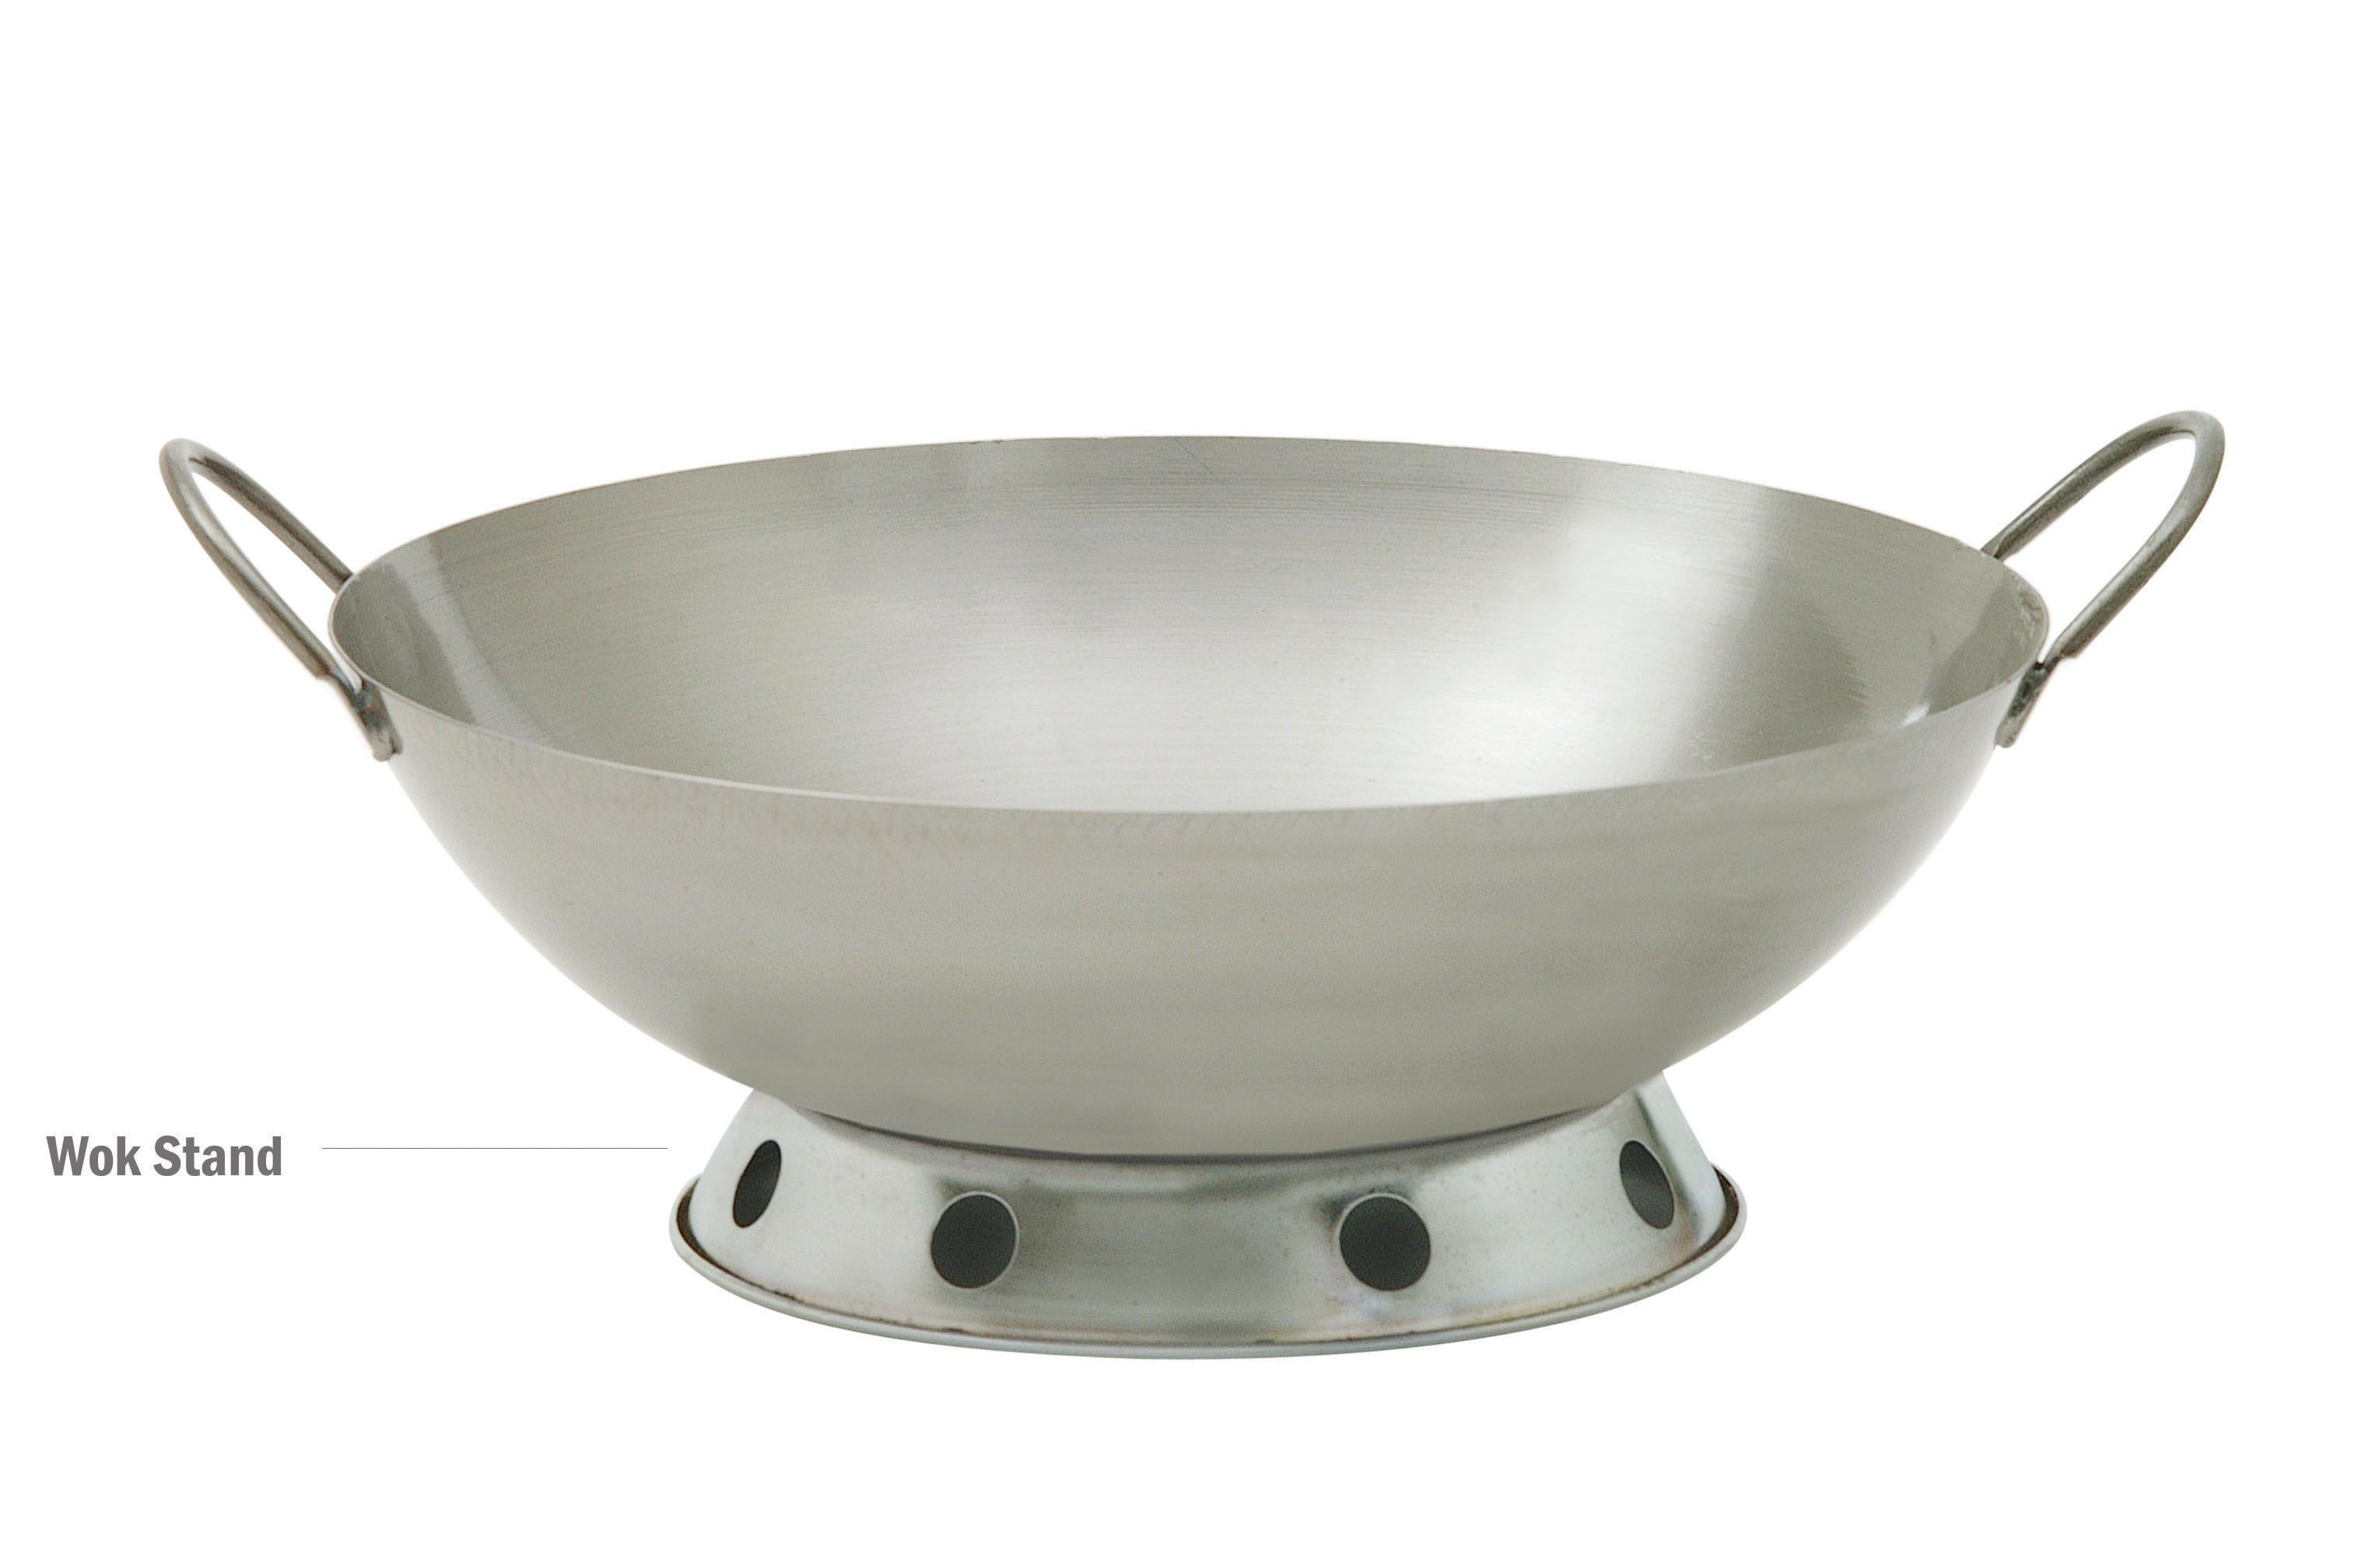 Chrome-Plated Steel Deluxe Wok Stand - 8-1/2